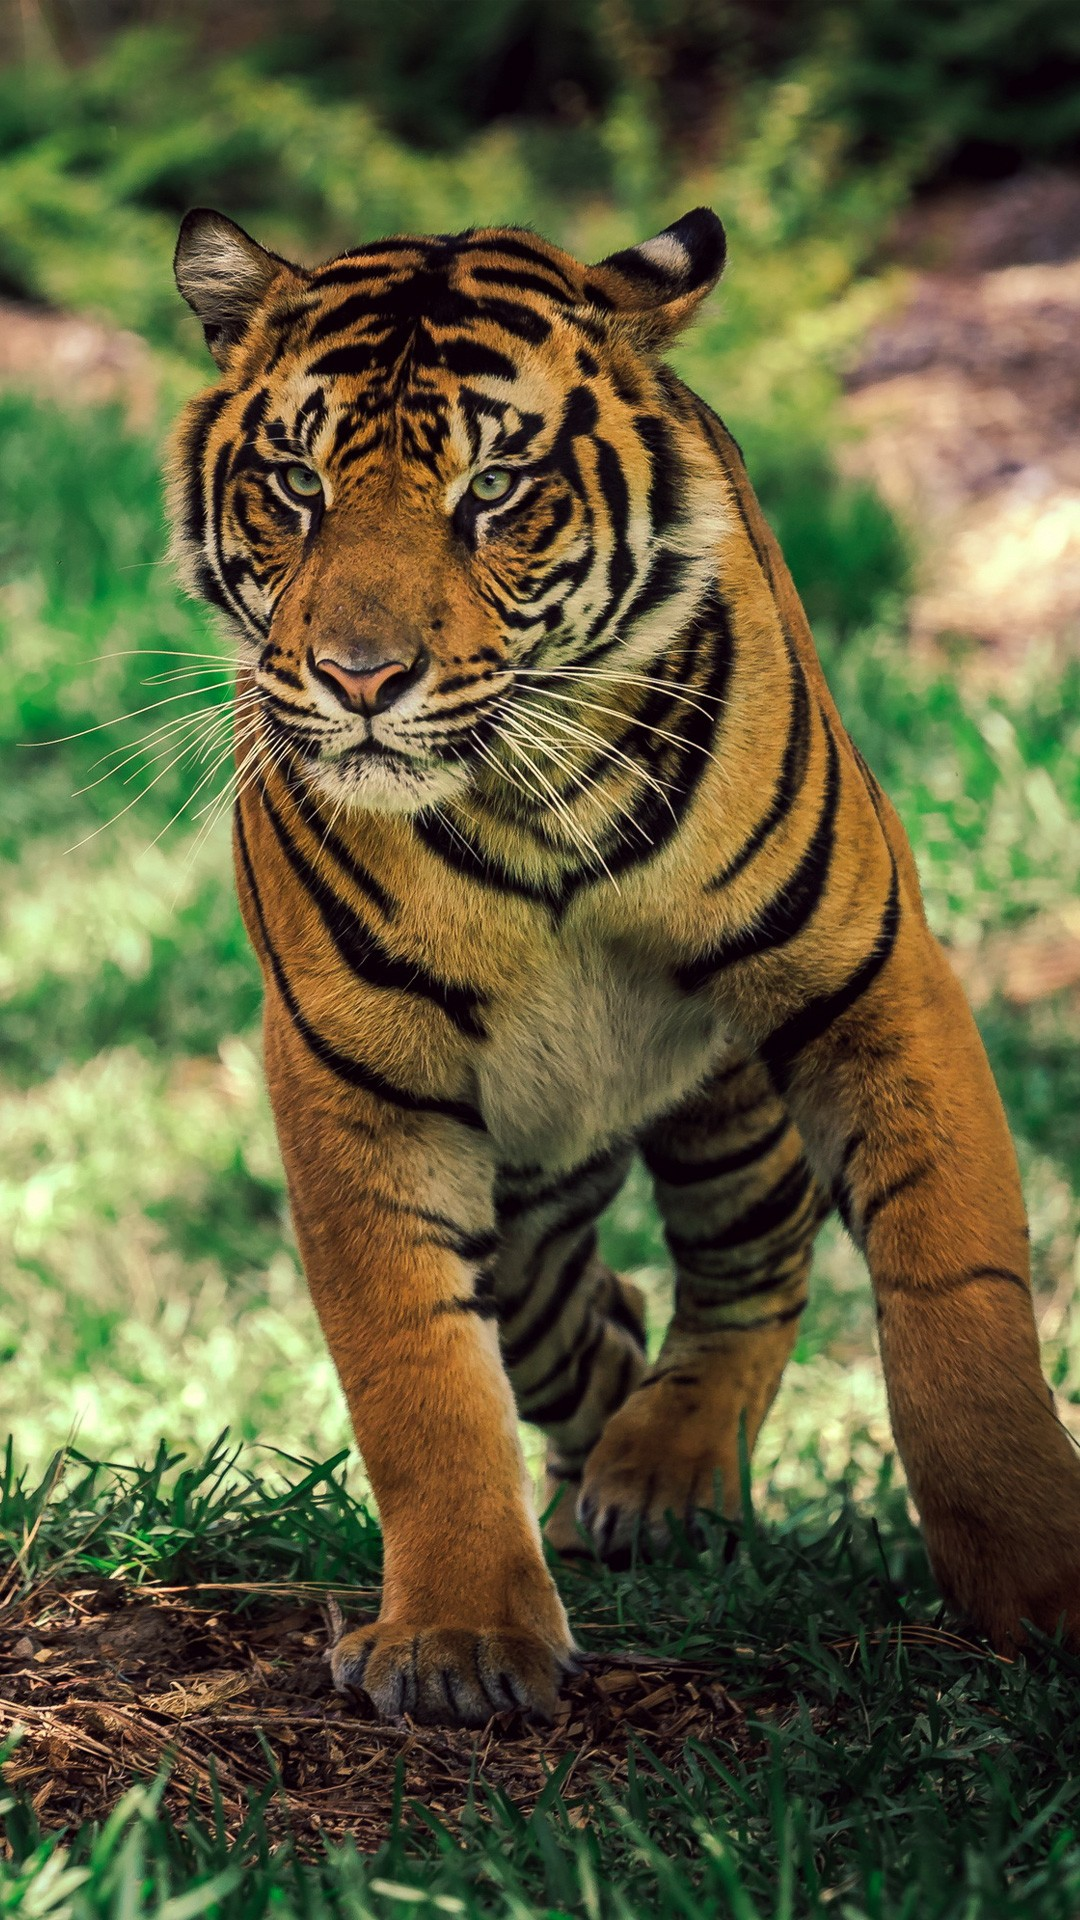 Bright Wallpapers For Iphone 6 Savanna Tiger Wildlife Wallpapers Hd Wallpapers Id 18016